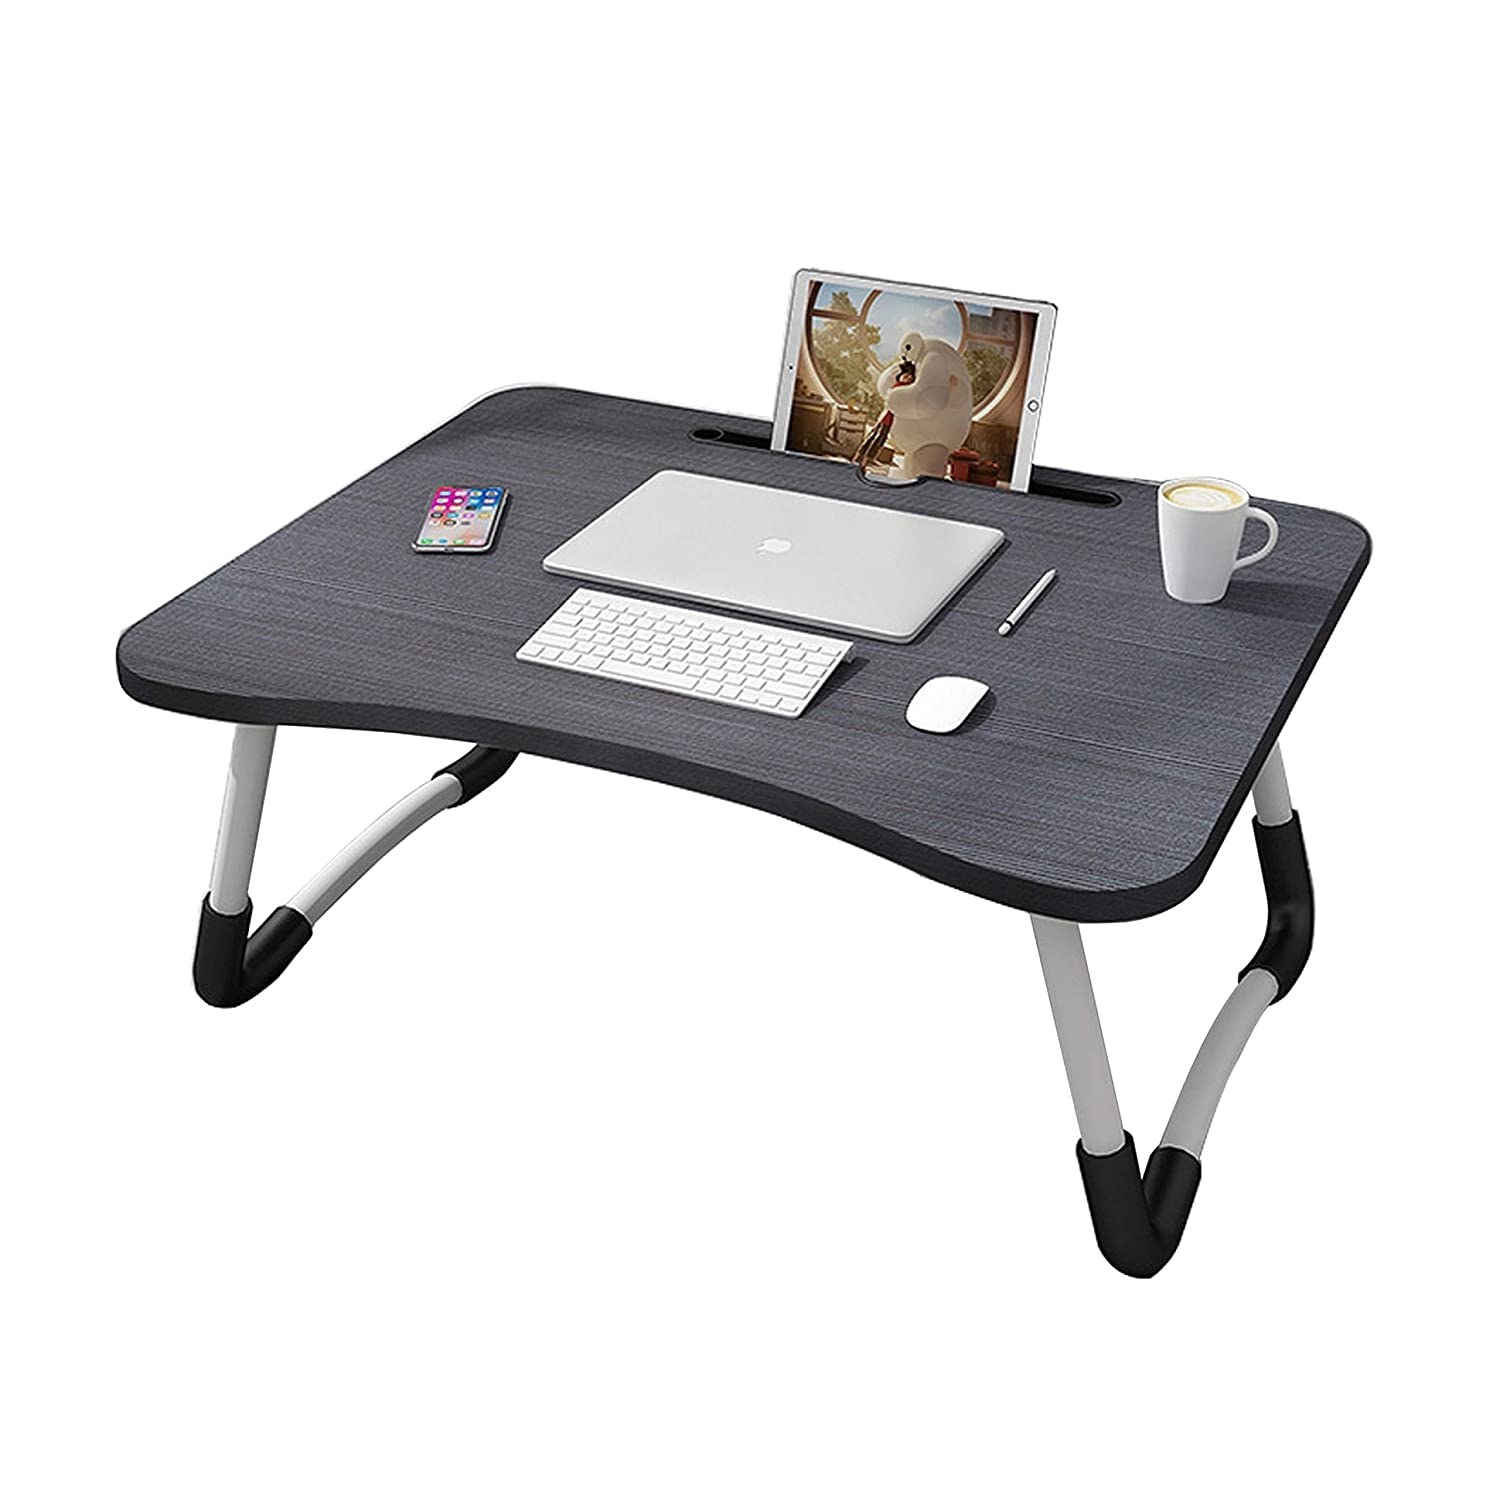 Laptop Table with Dock Stand/Study Table/Bed Table/Foldable and